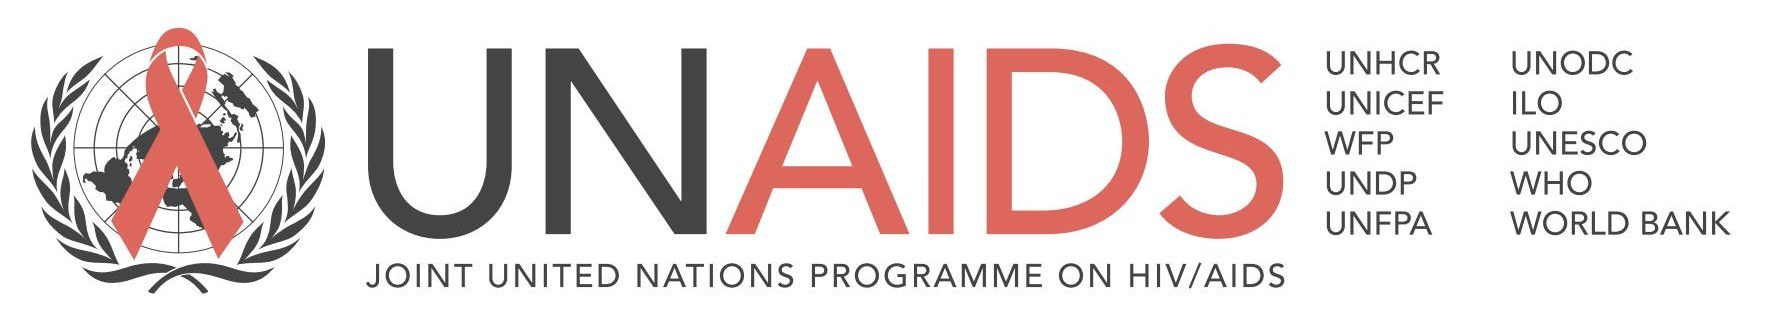 UNAIDS – Joint United Nations Programme on HIV/AIDS Logo [EPS PDF] png